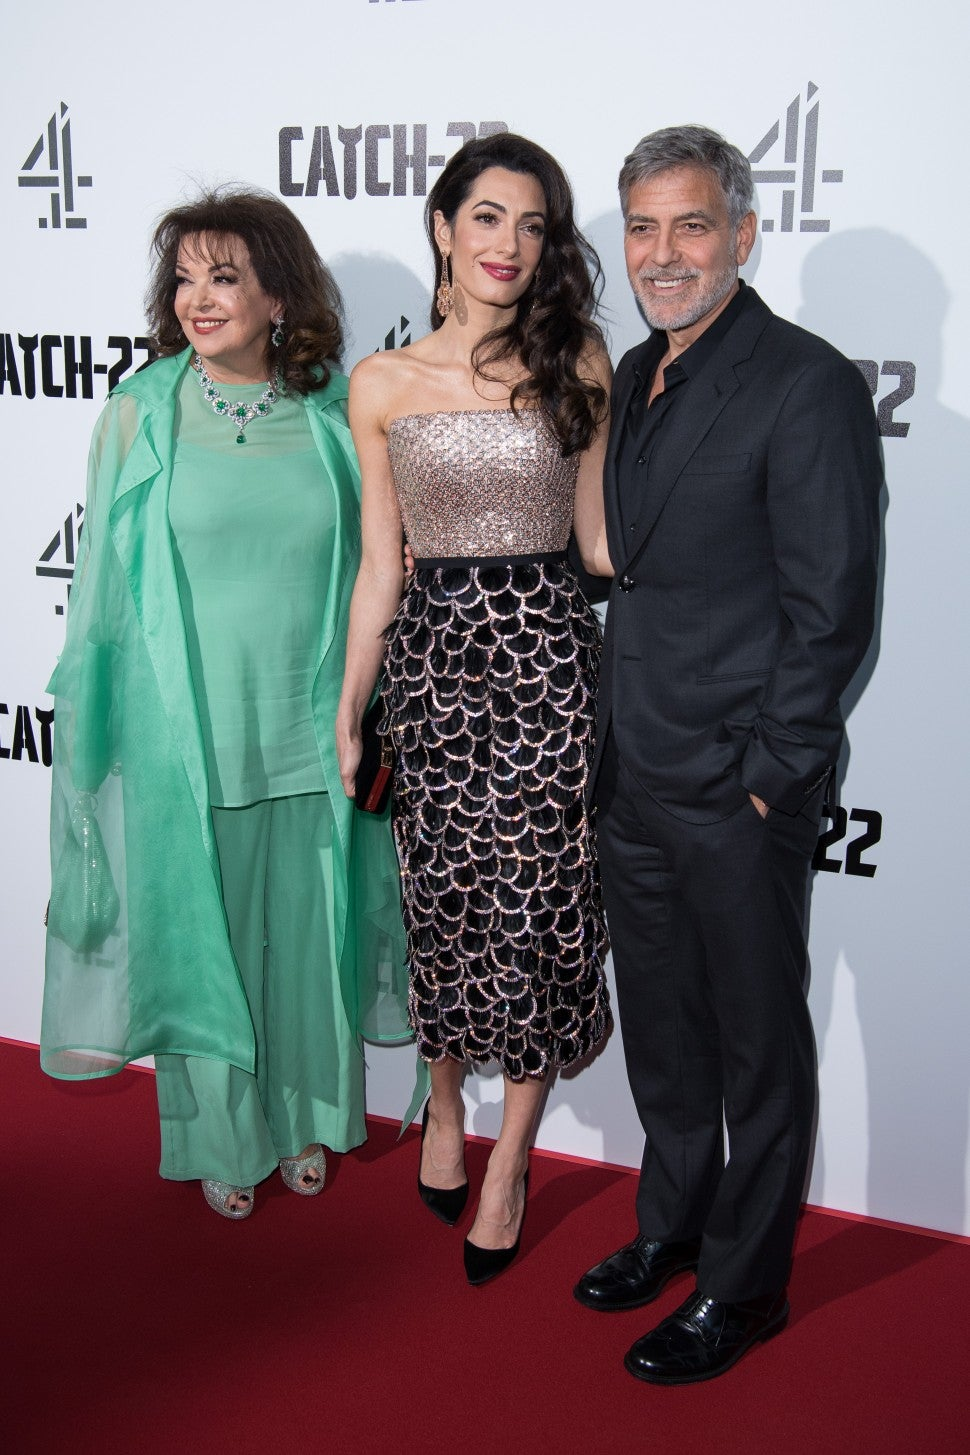 Baria Alamuddin, Amal Clooney and George Clooney Catch 22 London Premiere